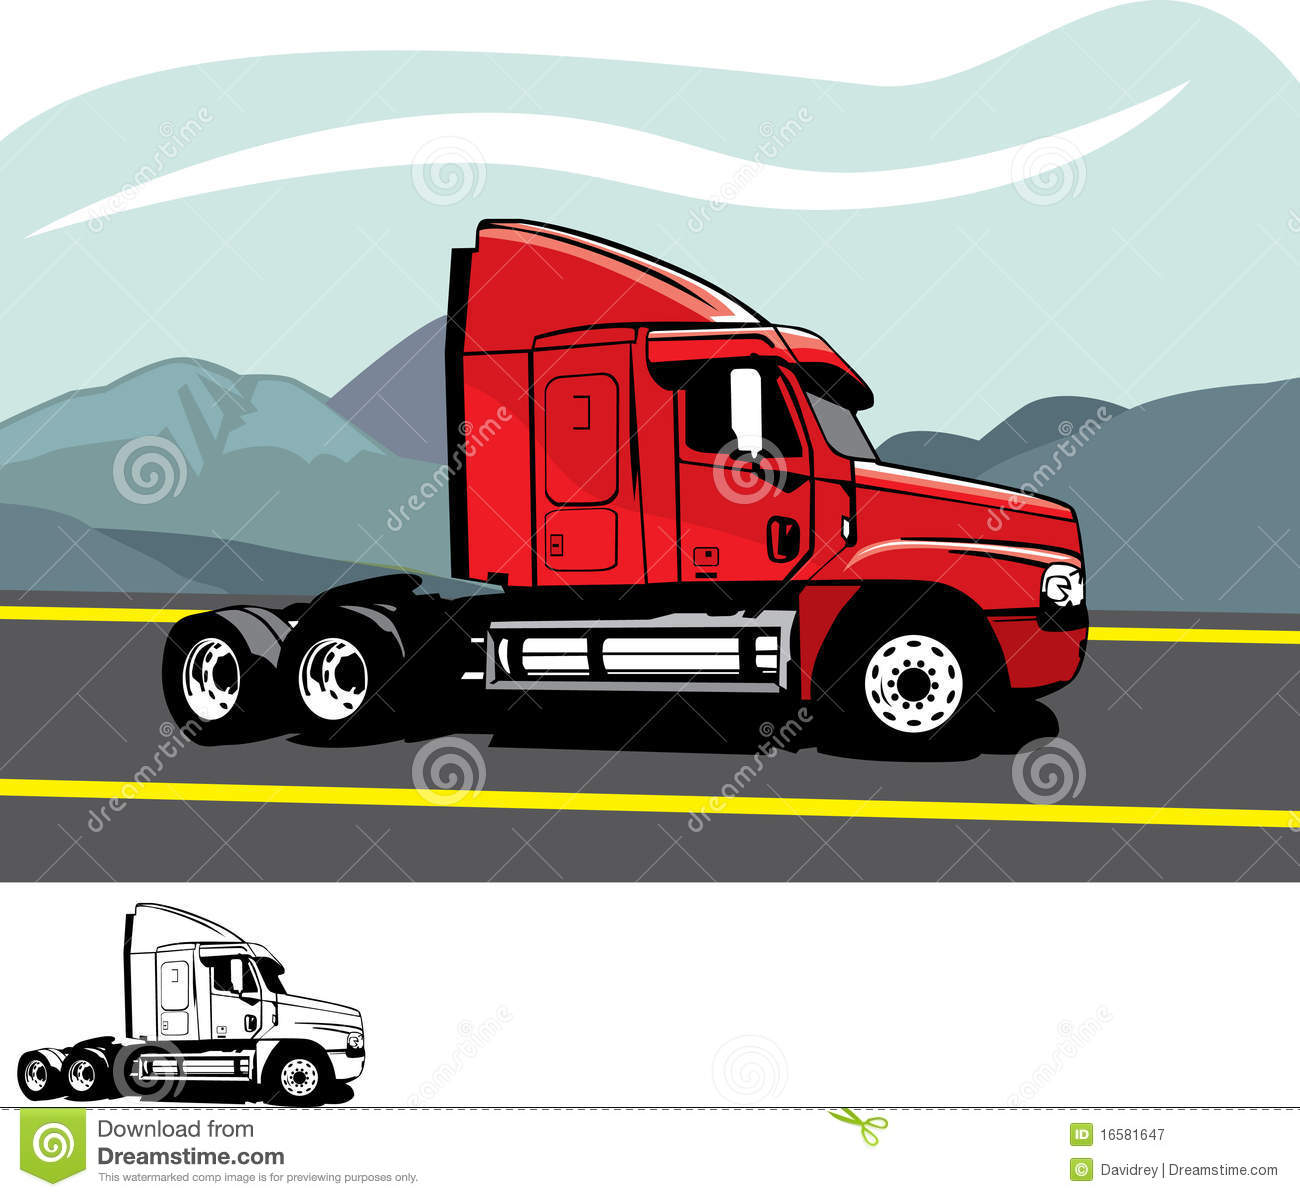 Camion de remorque illustration de vecteur illustration - Dessin de camion semi remorque ...